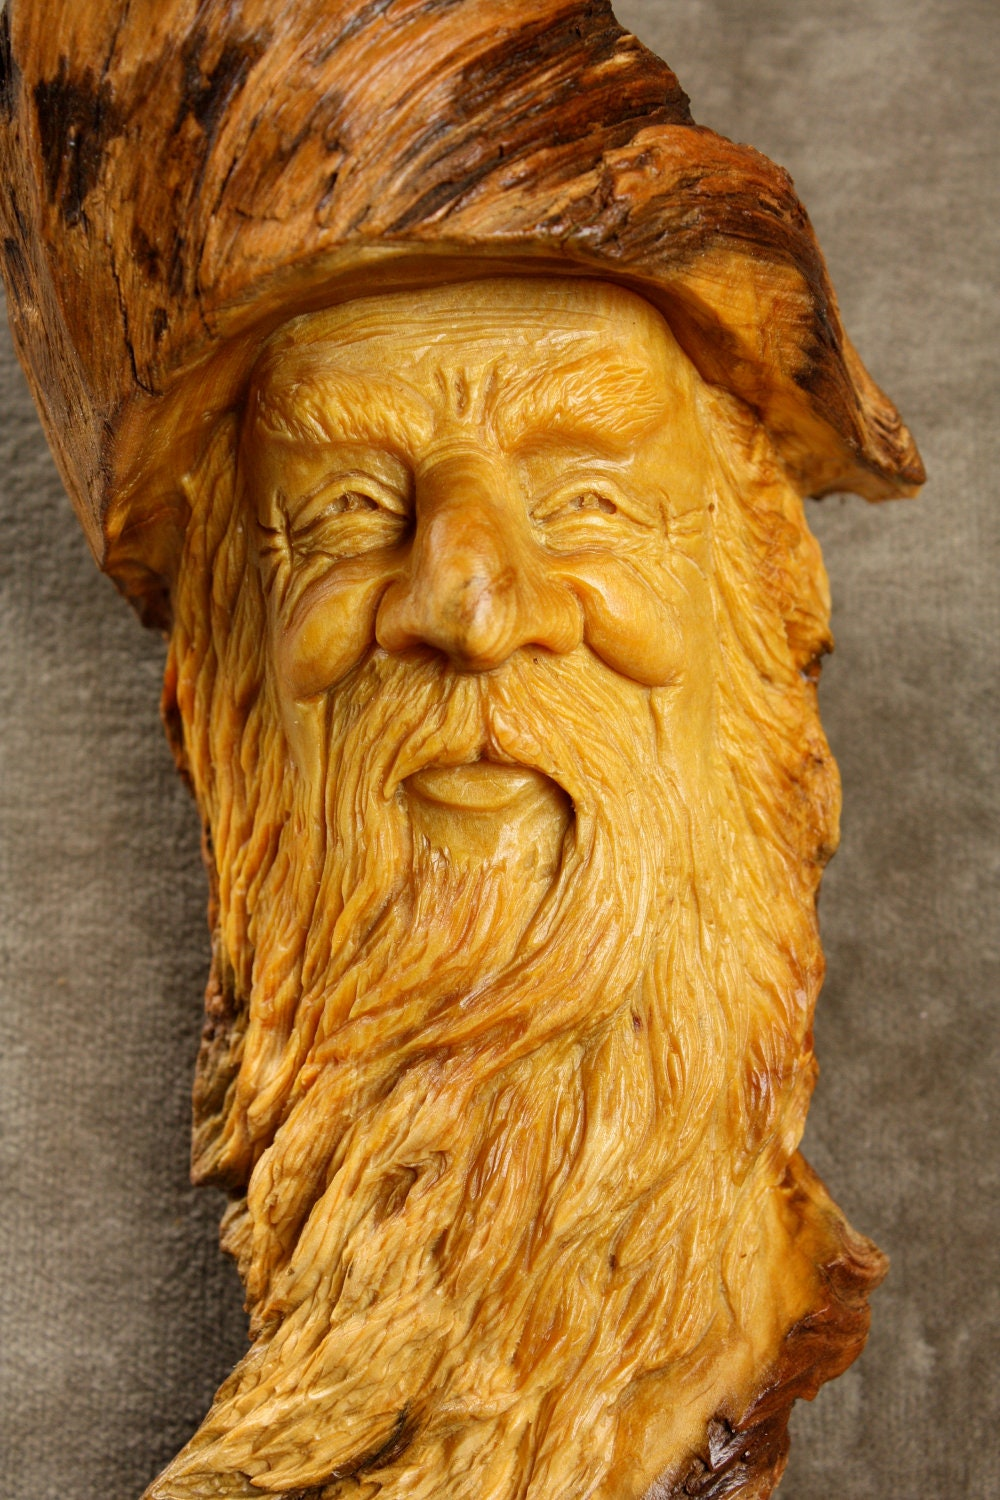 Wood carving spirit gnome elf wizard valentines day gift